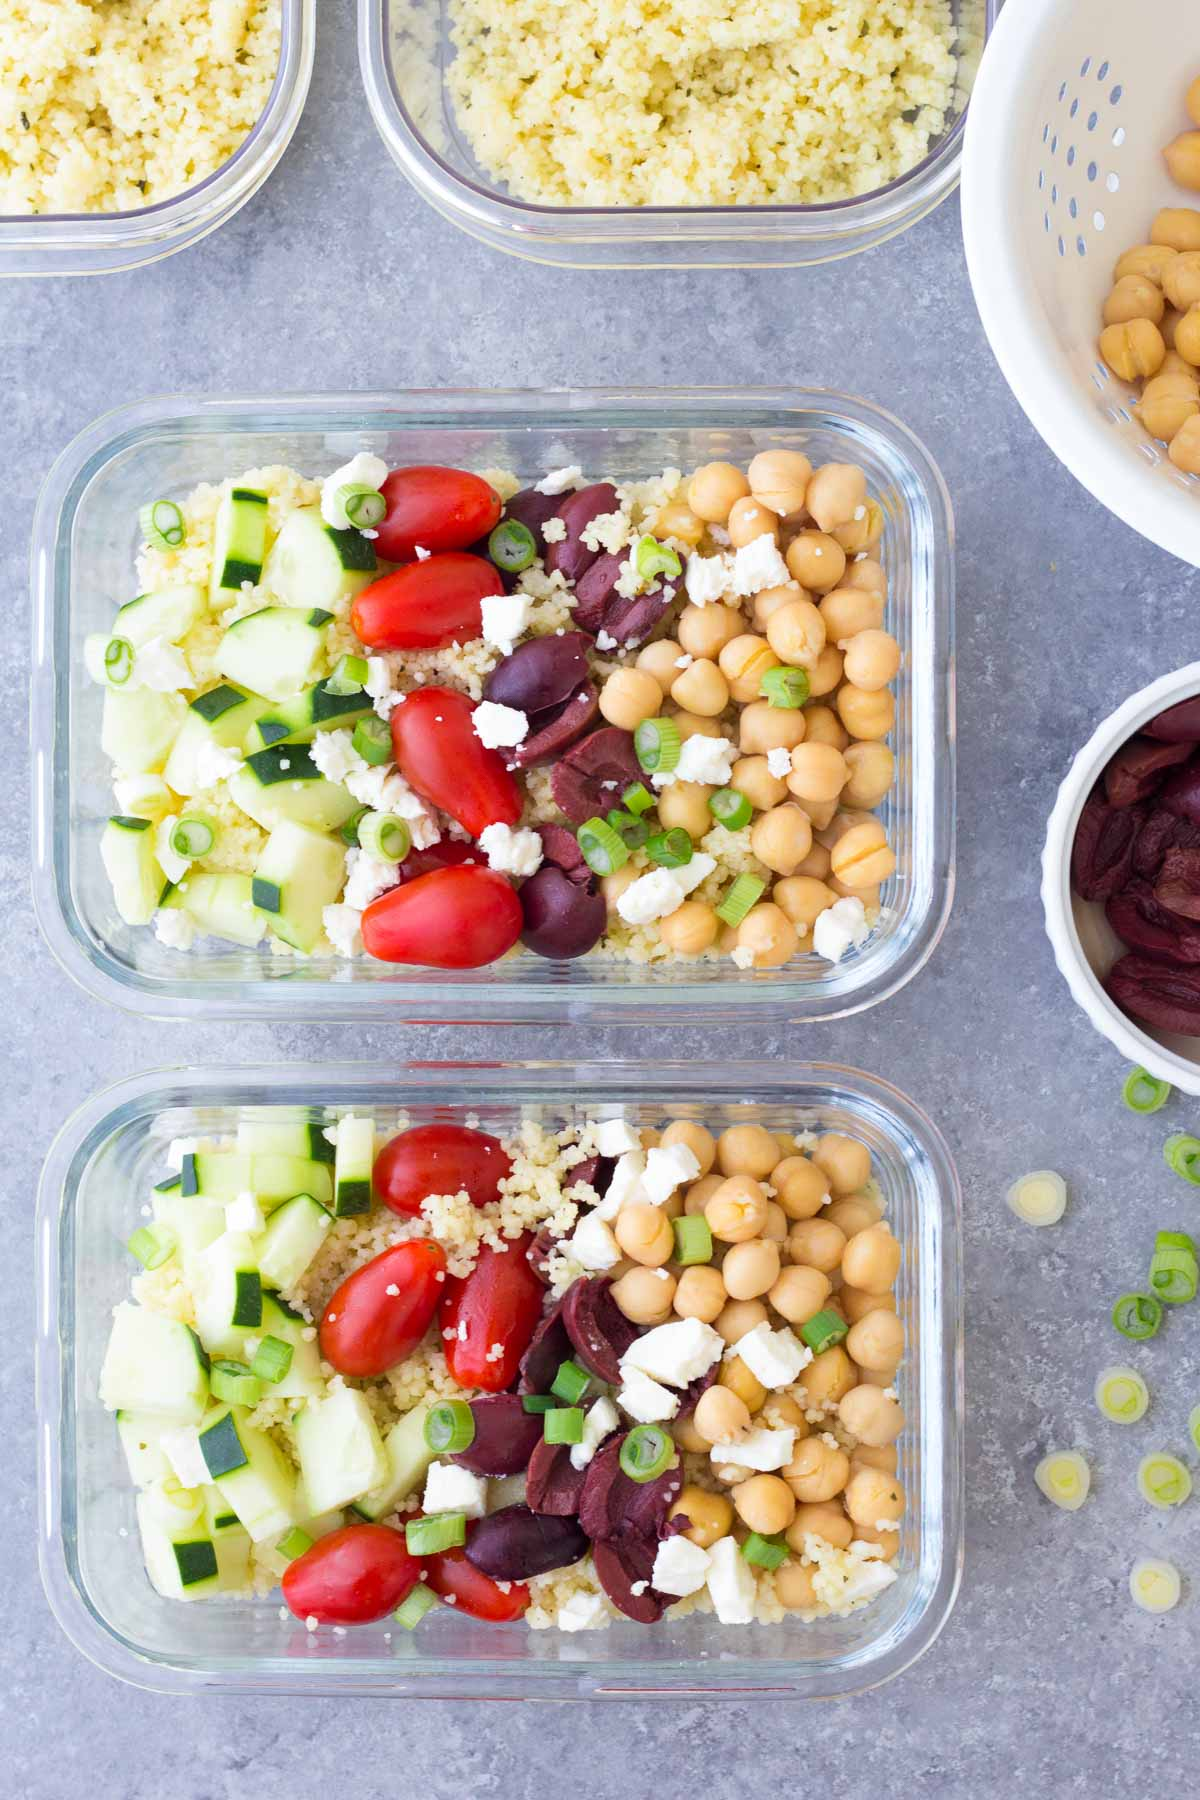 Chickpea Salad in meal prep containers